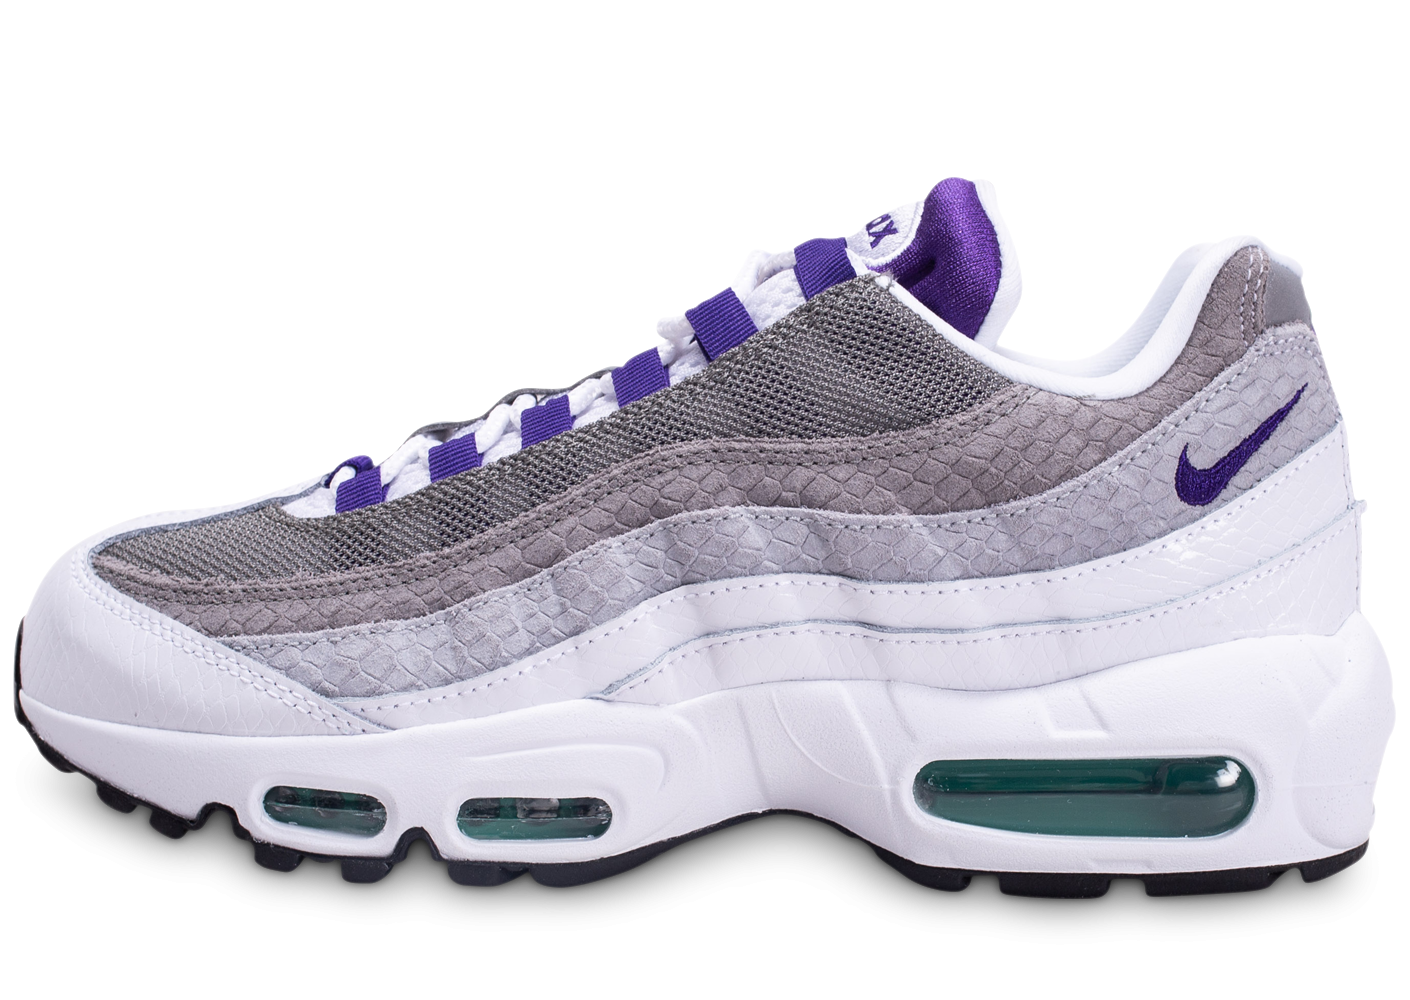 Nike Air Max 95 Blanche Grise Violette et Verte Chaussures